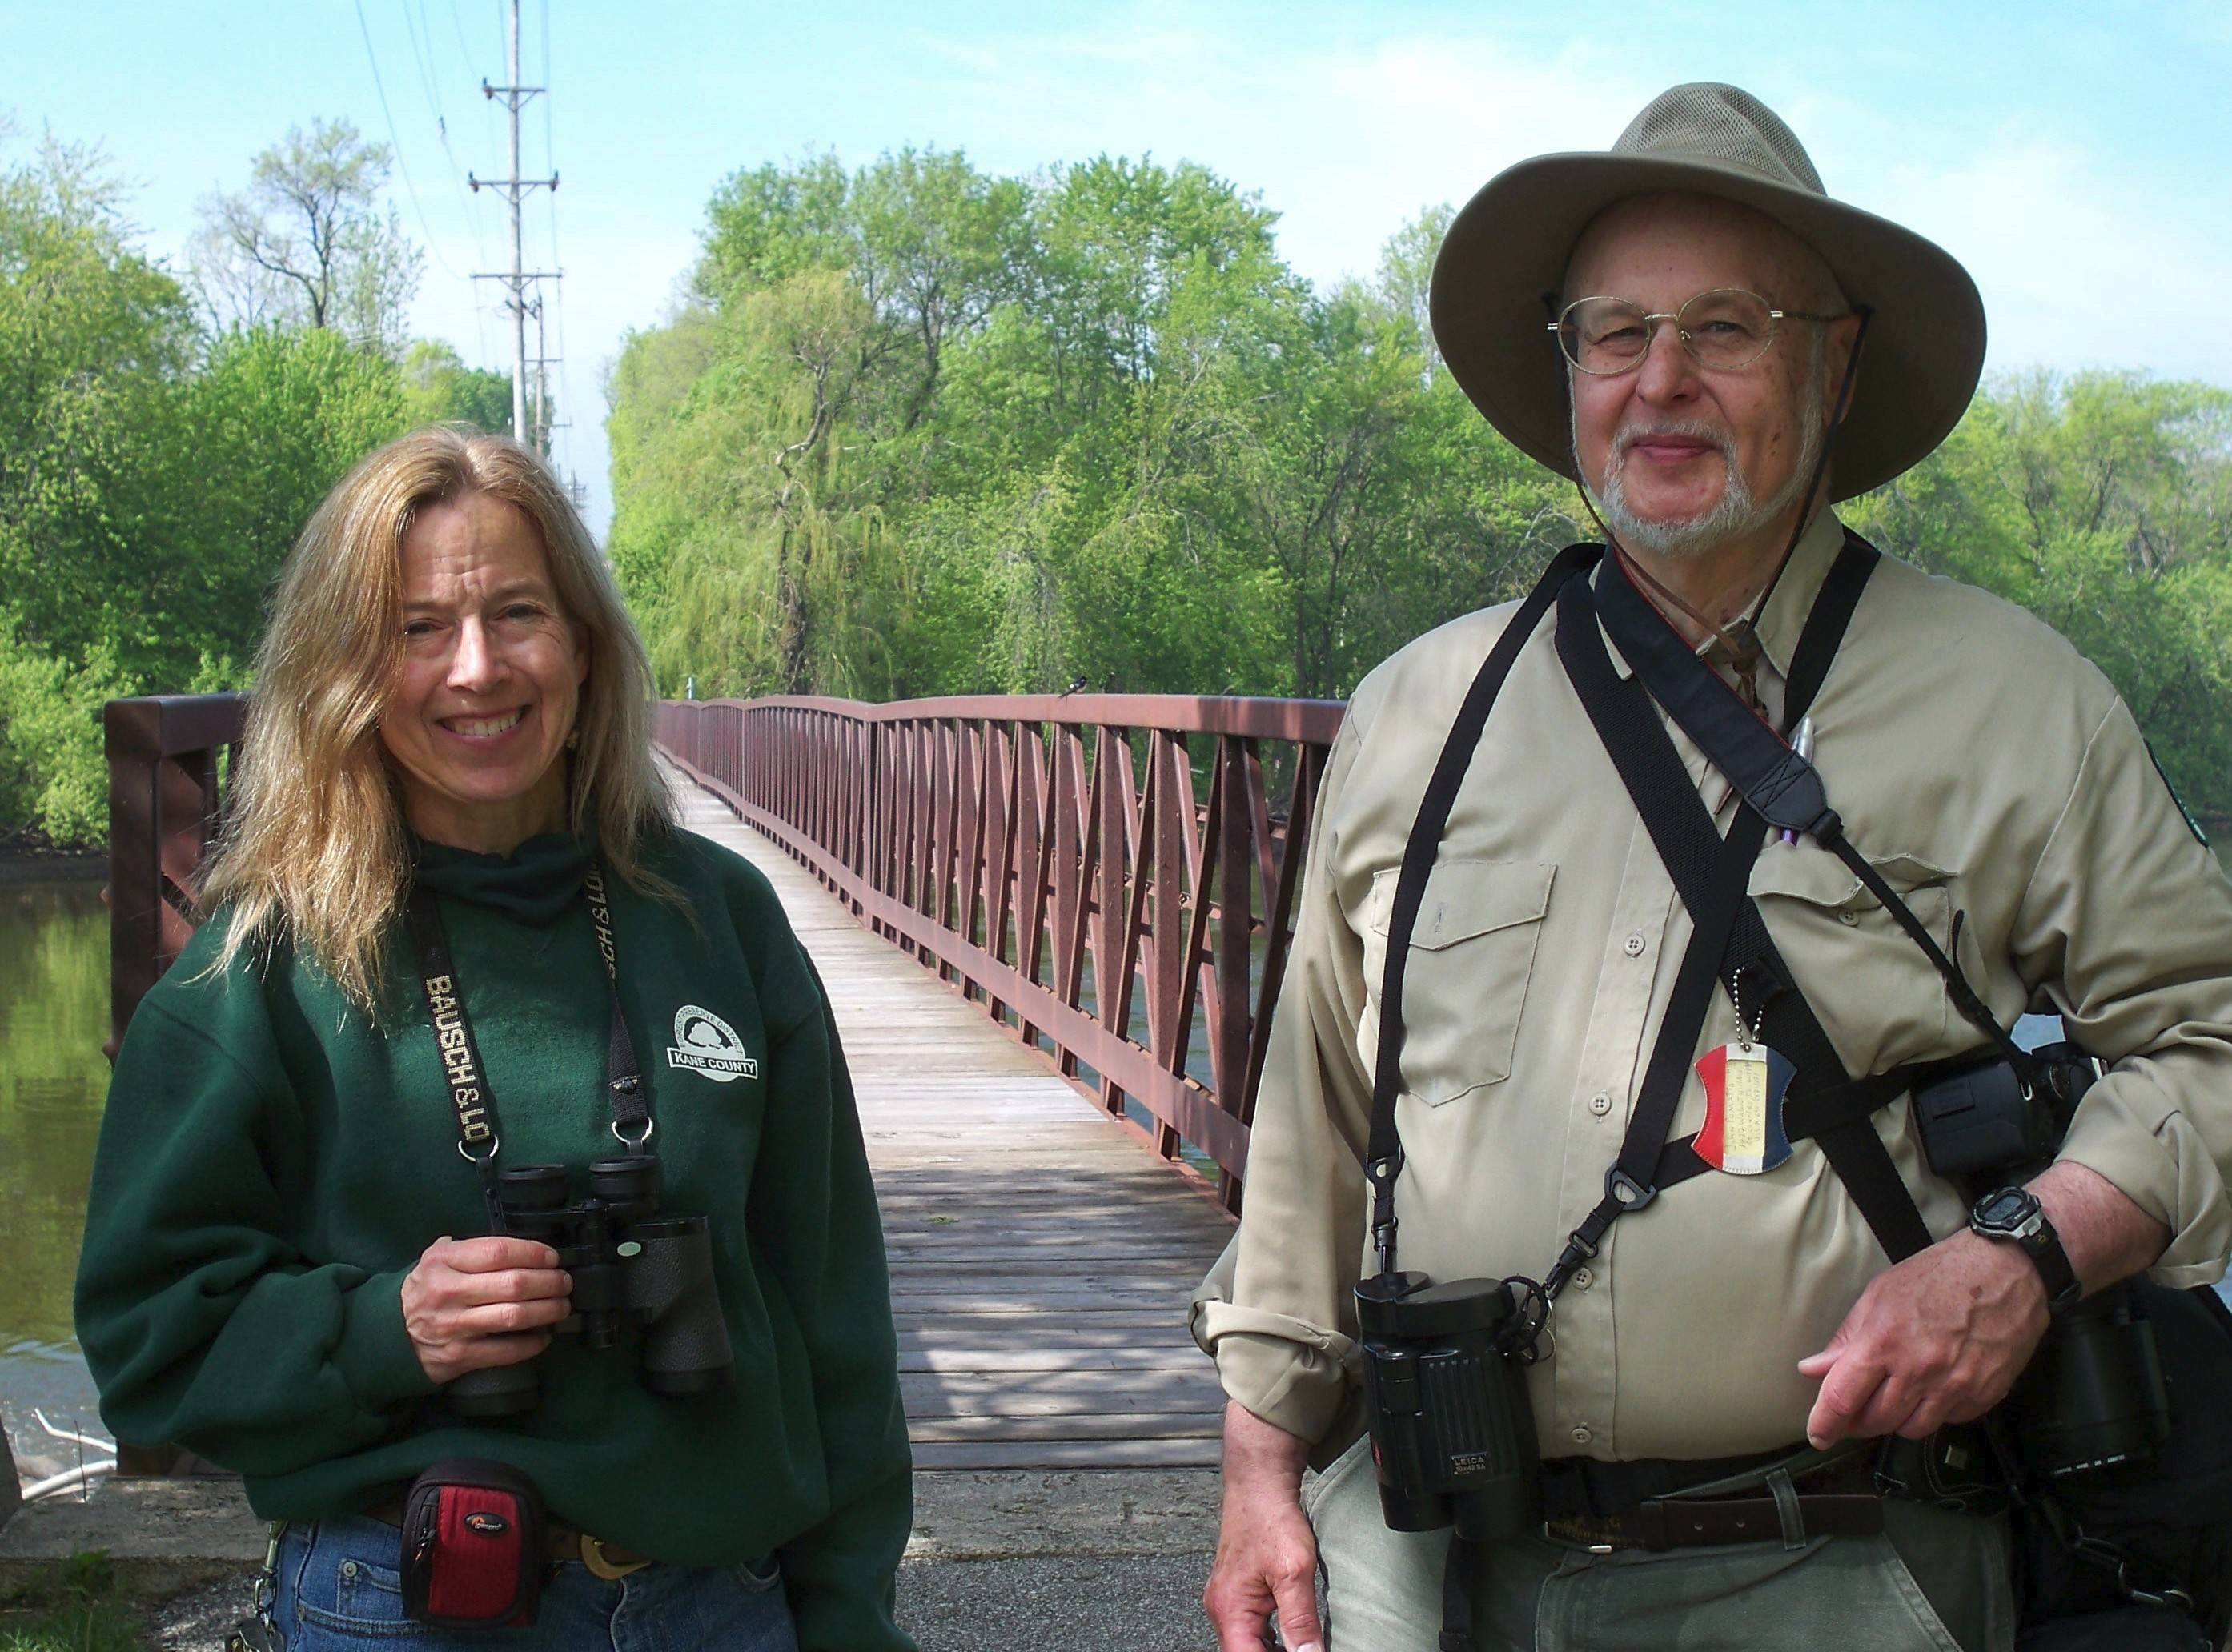 Naturalists Valerie Blaine, left, and Jack Pomatto were friends as well as colleagues.